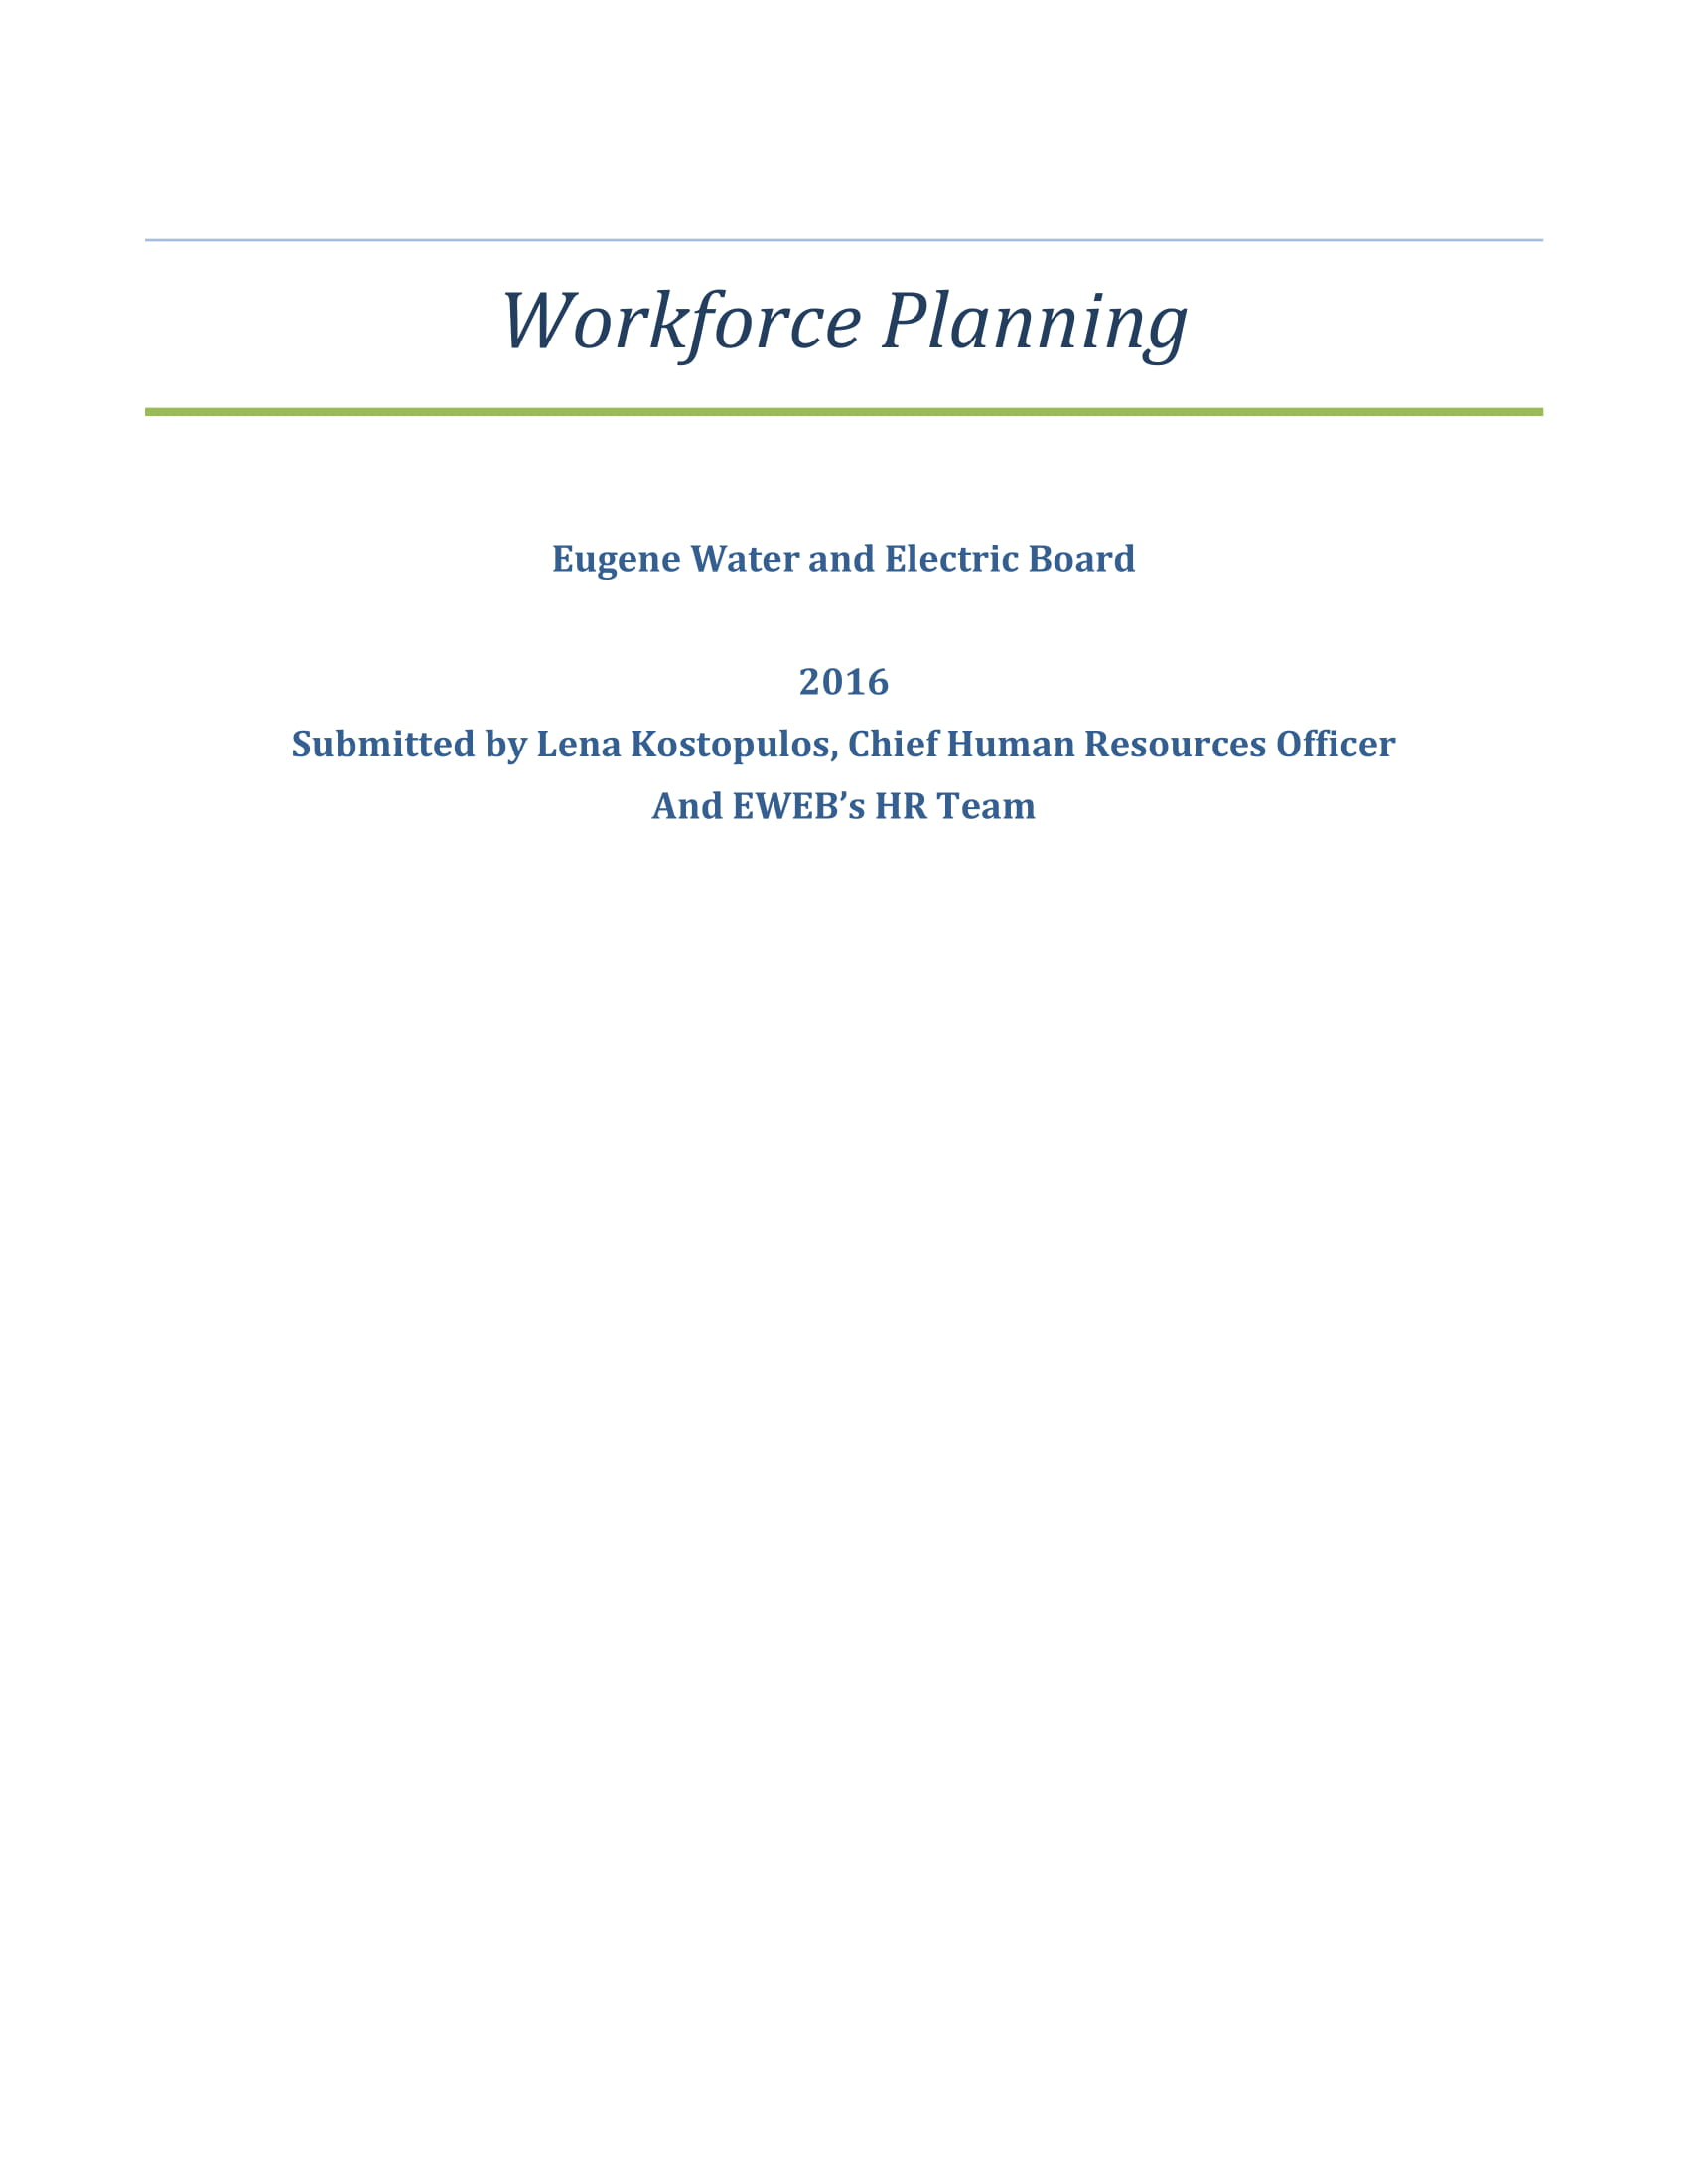 Template For Workforce Planning Example